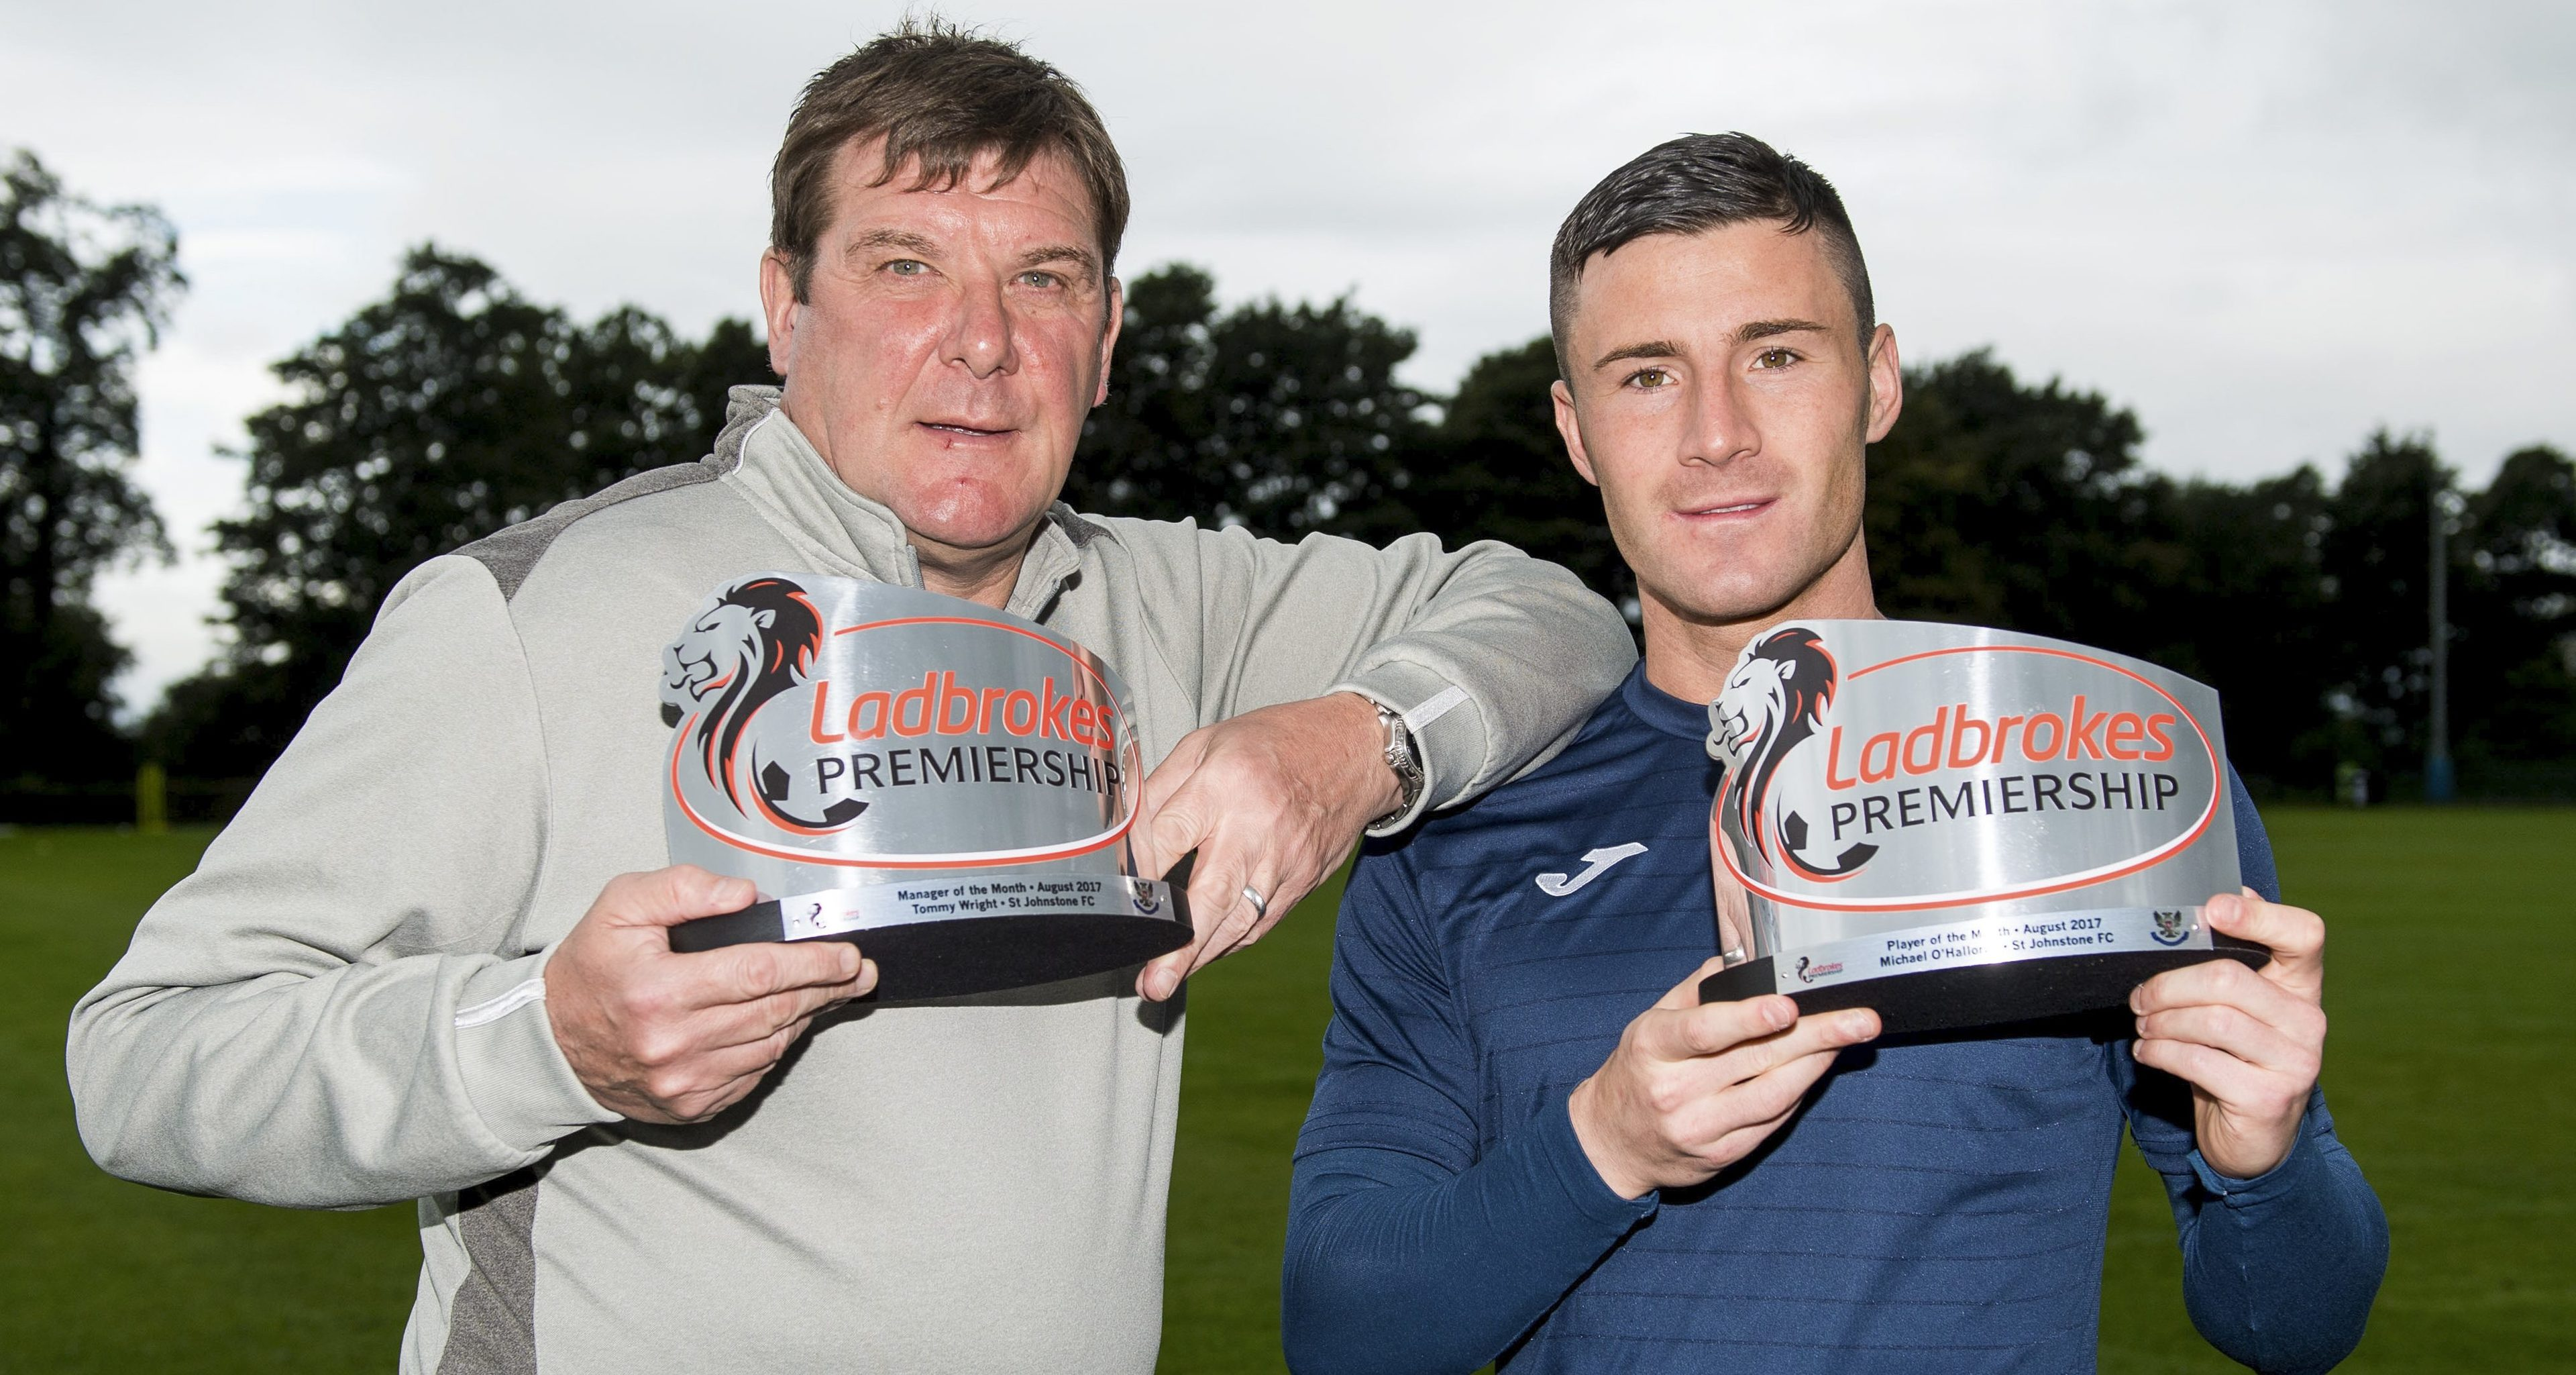 St Johnstone manager Tommy Wright (left) and striker Michael O'Halloran receive the Ladbrokes Premiership Manager and Player of the Month awards for August.